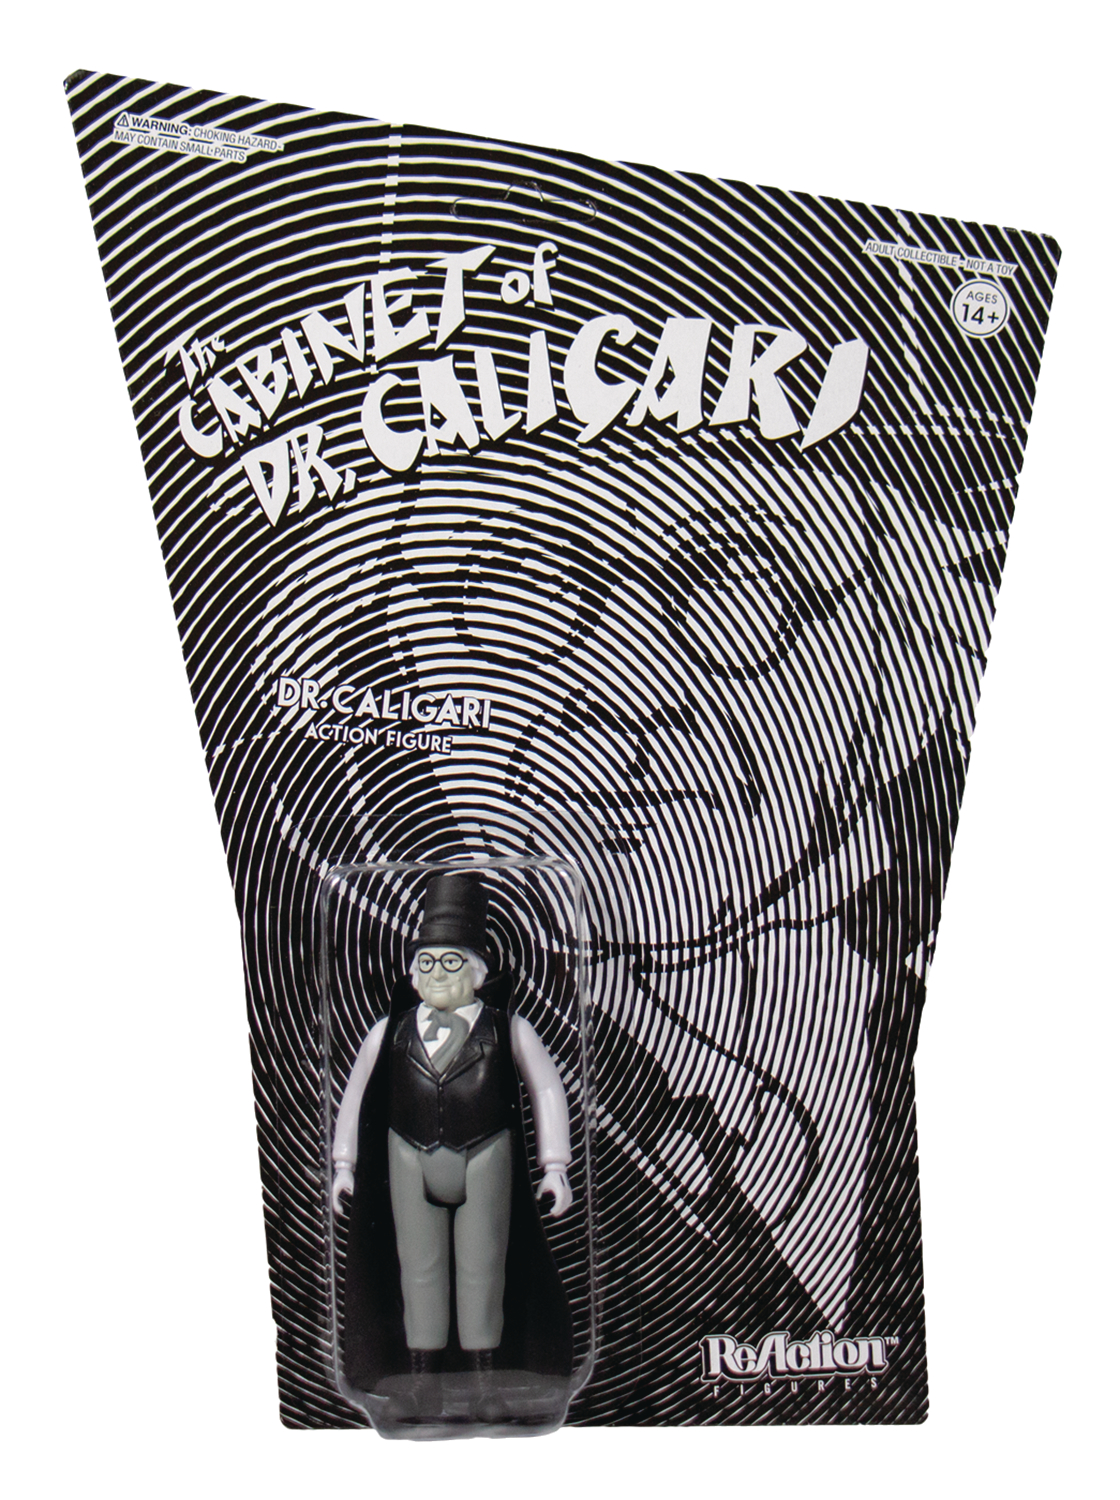 CABINET OF DR CALIGARI DR CALIGARI REACTION FIG